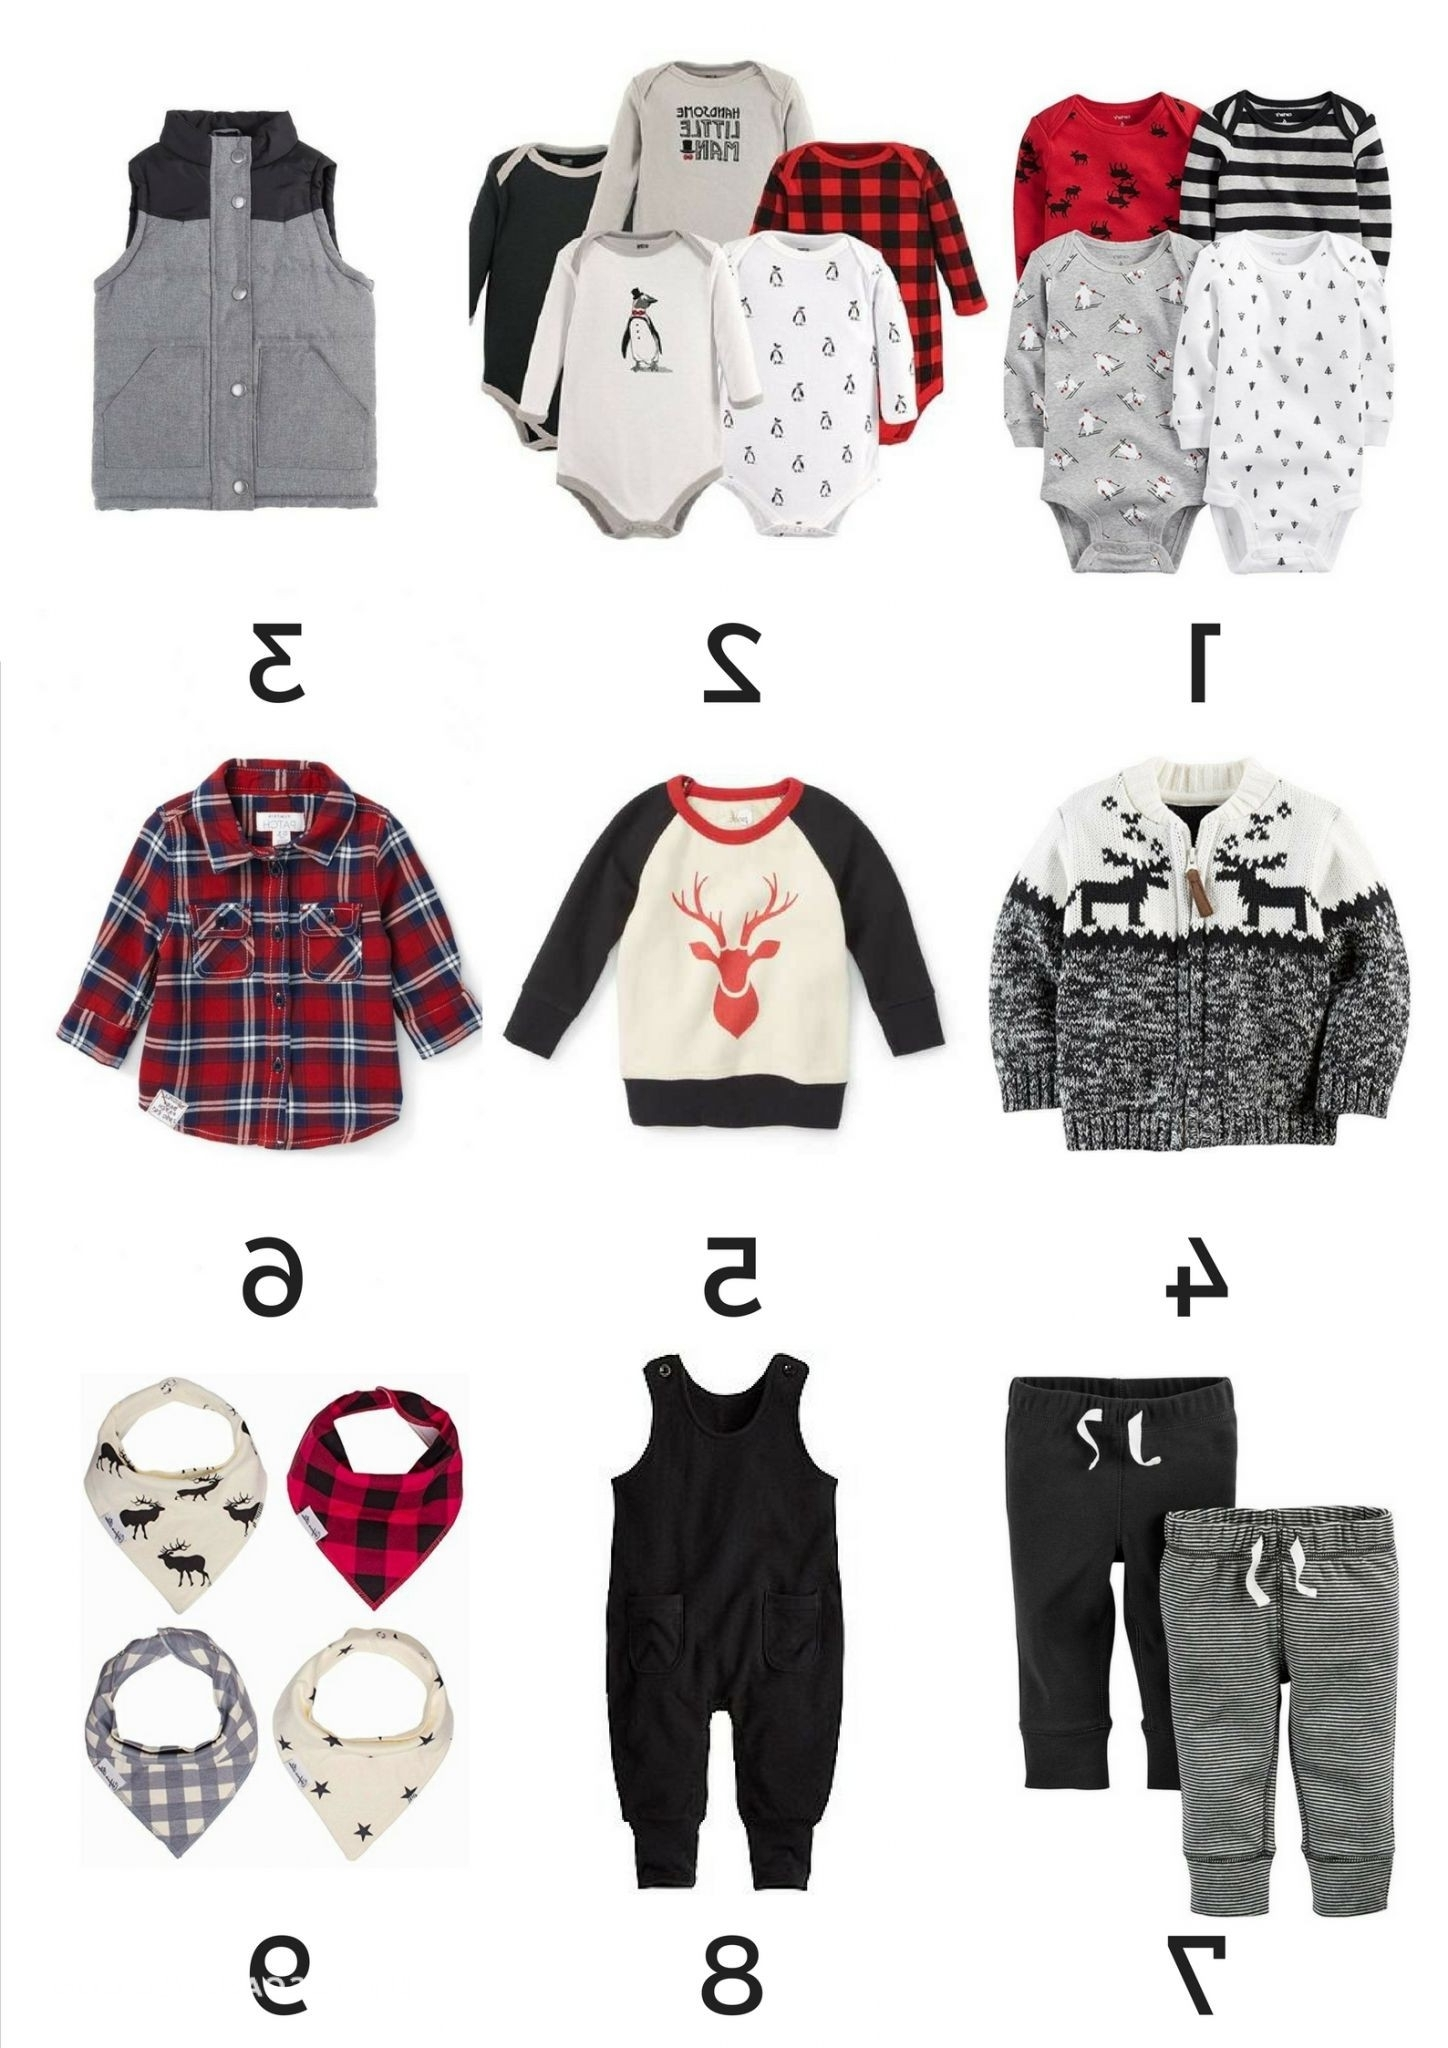 Your Guide To Baby's First Capsule Wardrobe For 2017 Wardrobes For Baby Clothes (View 15 of 15)